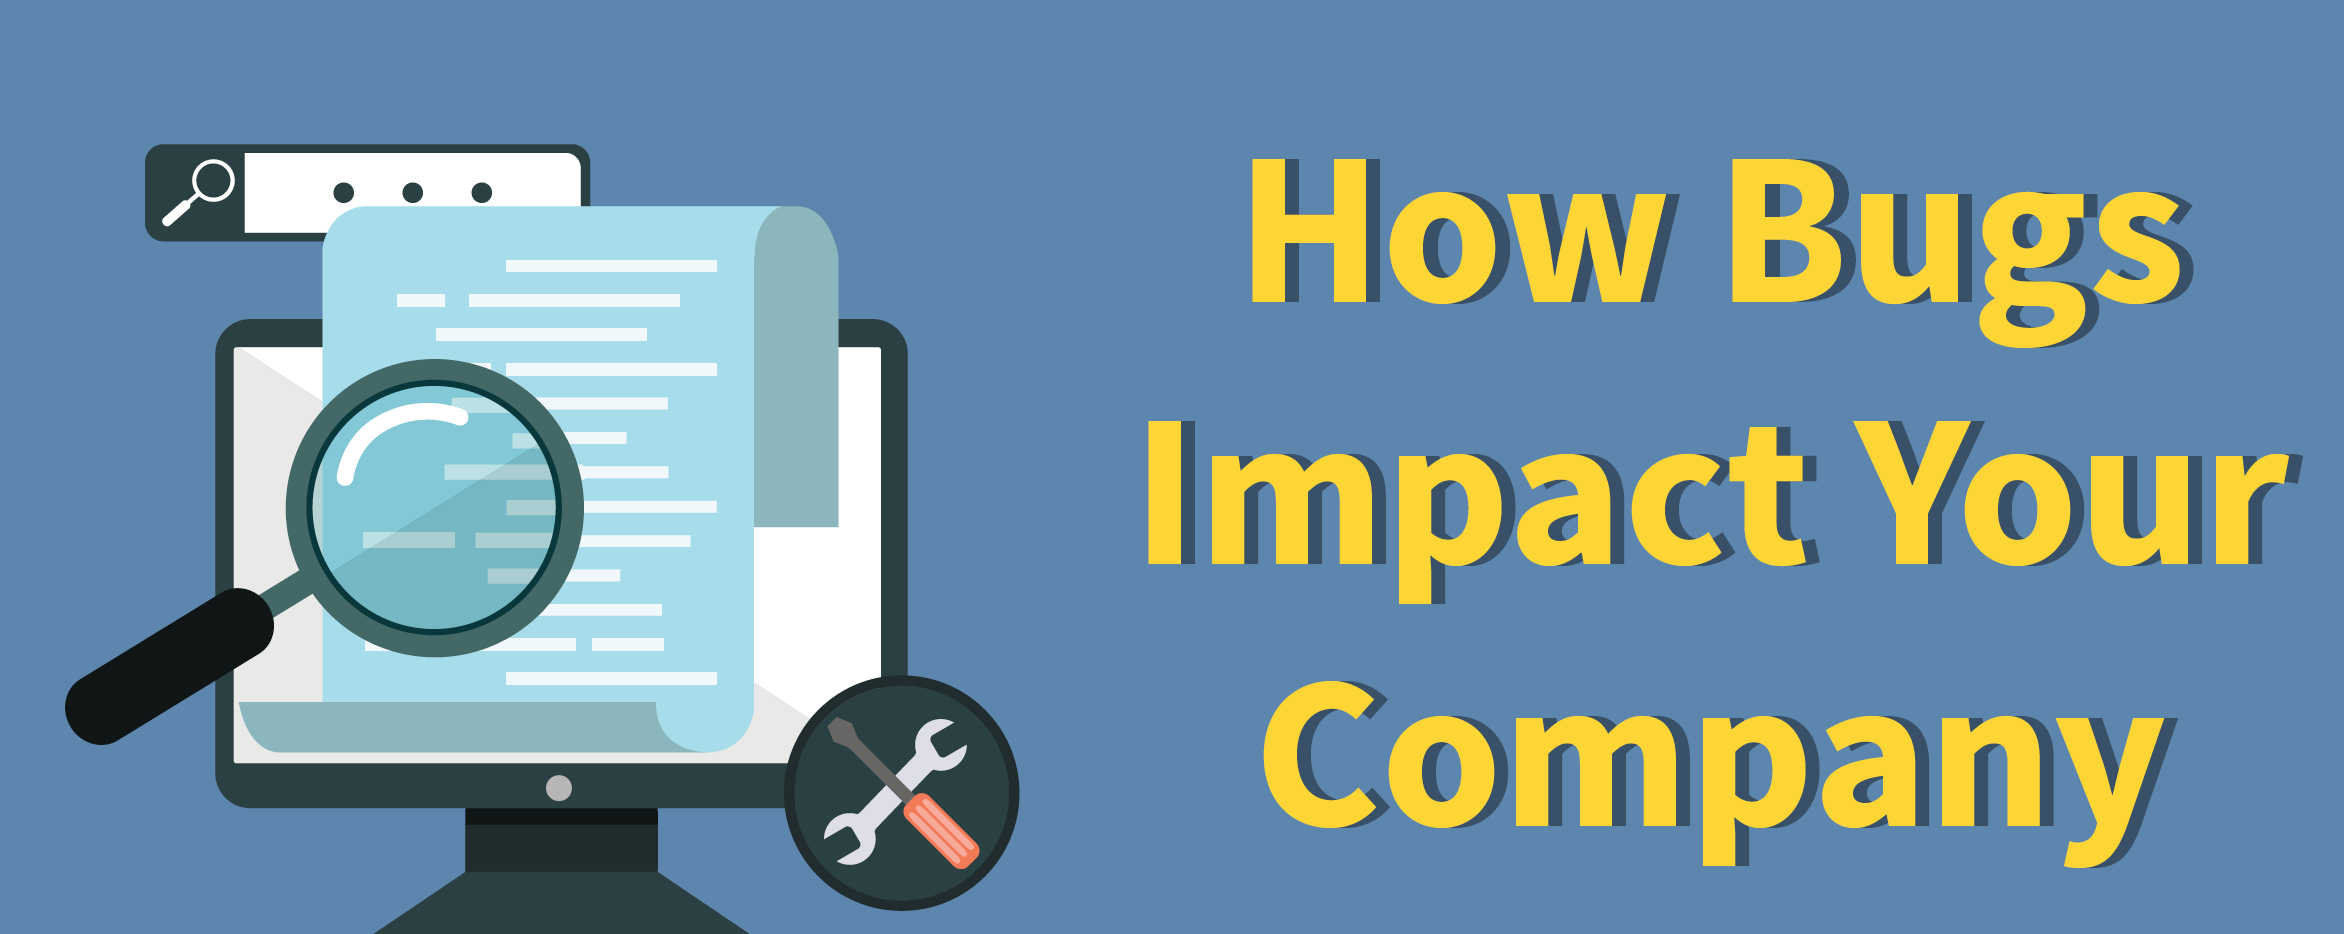 How Bugs Impact Your Company [infographic]